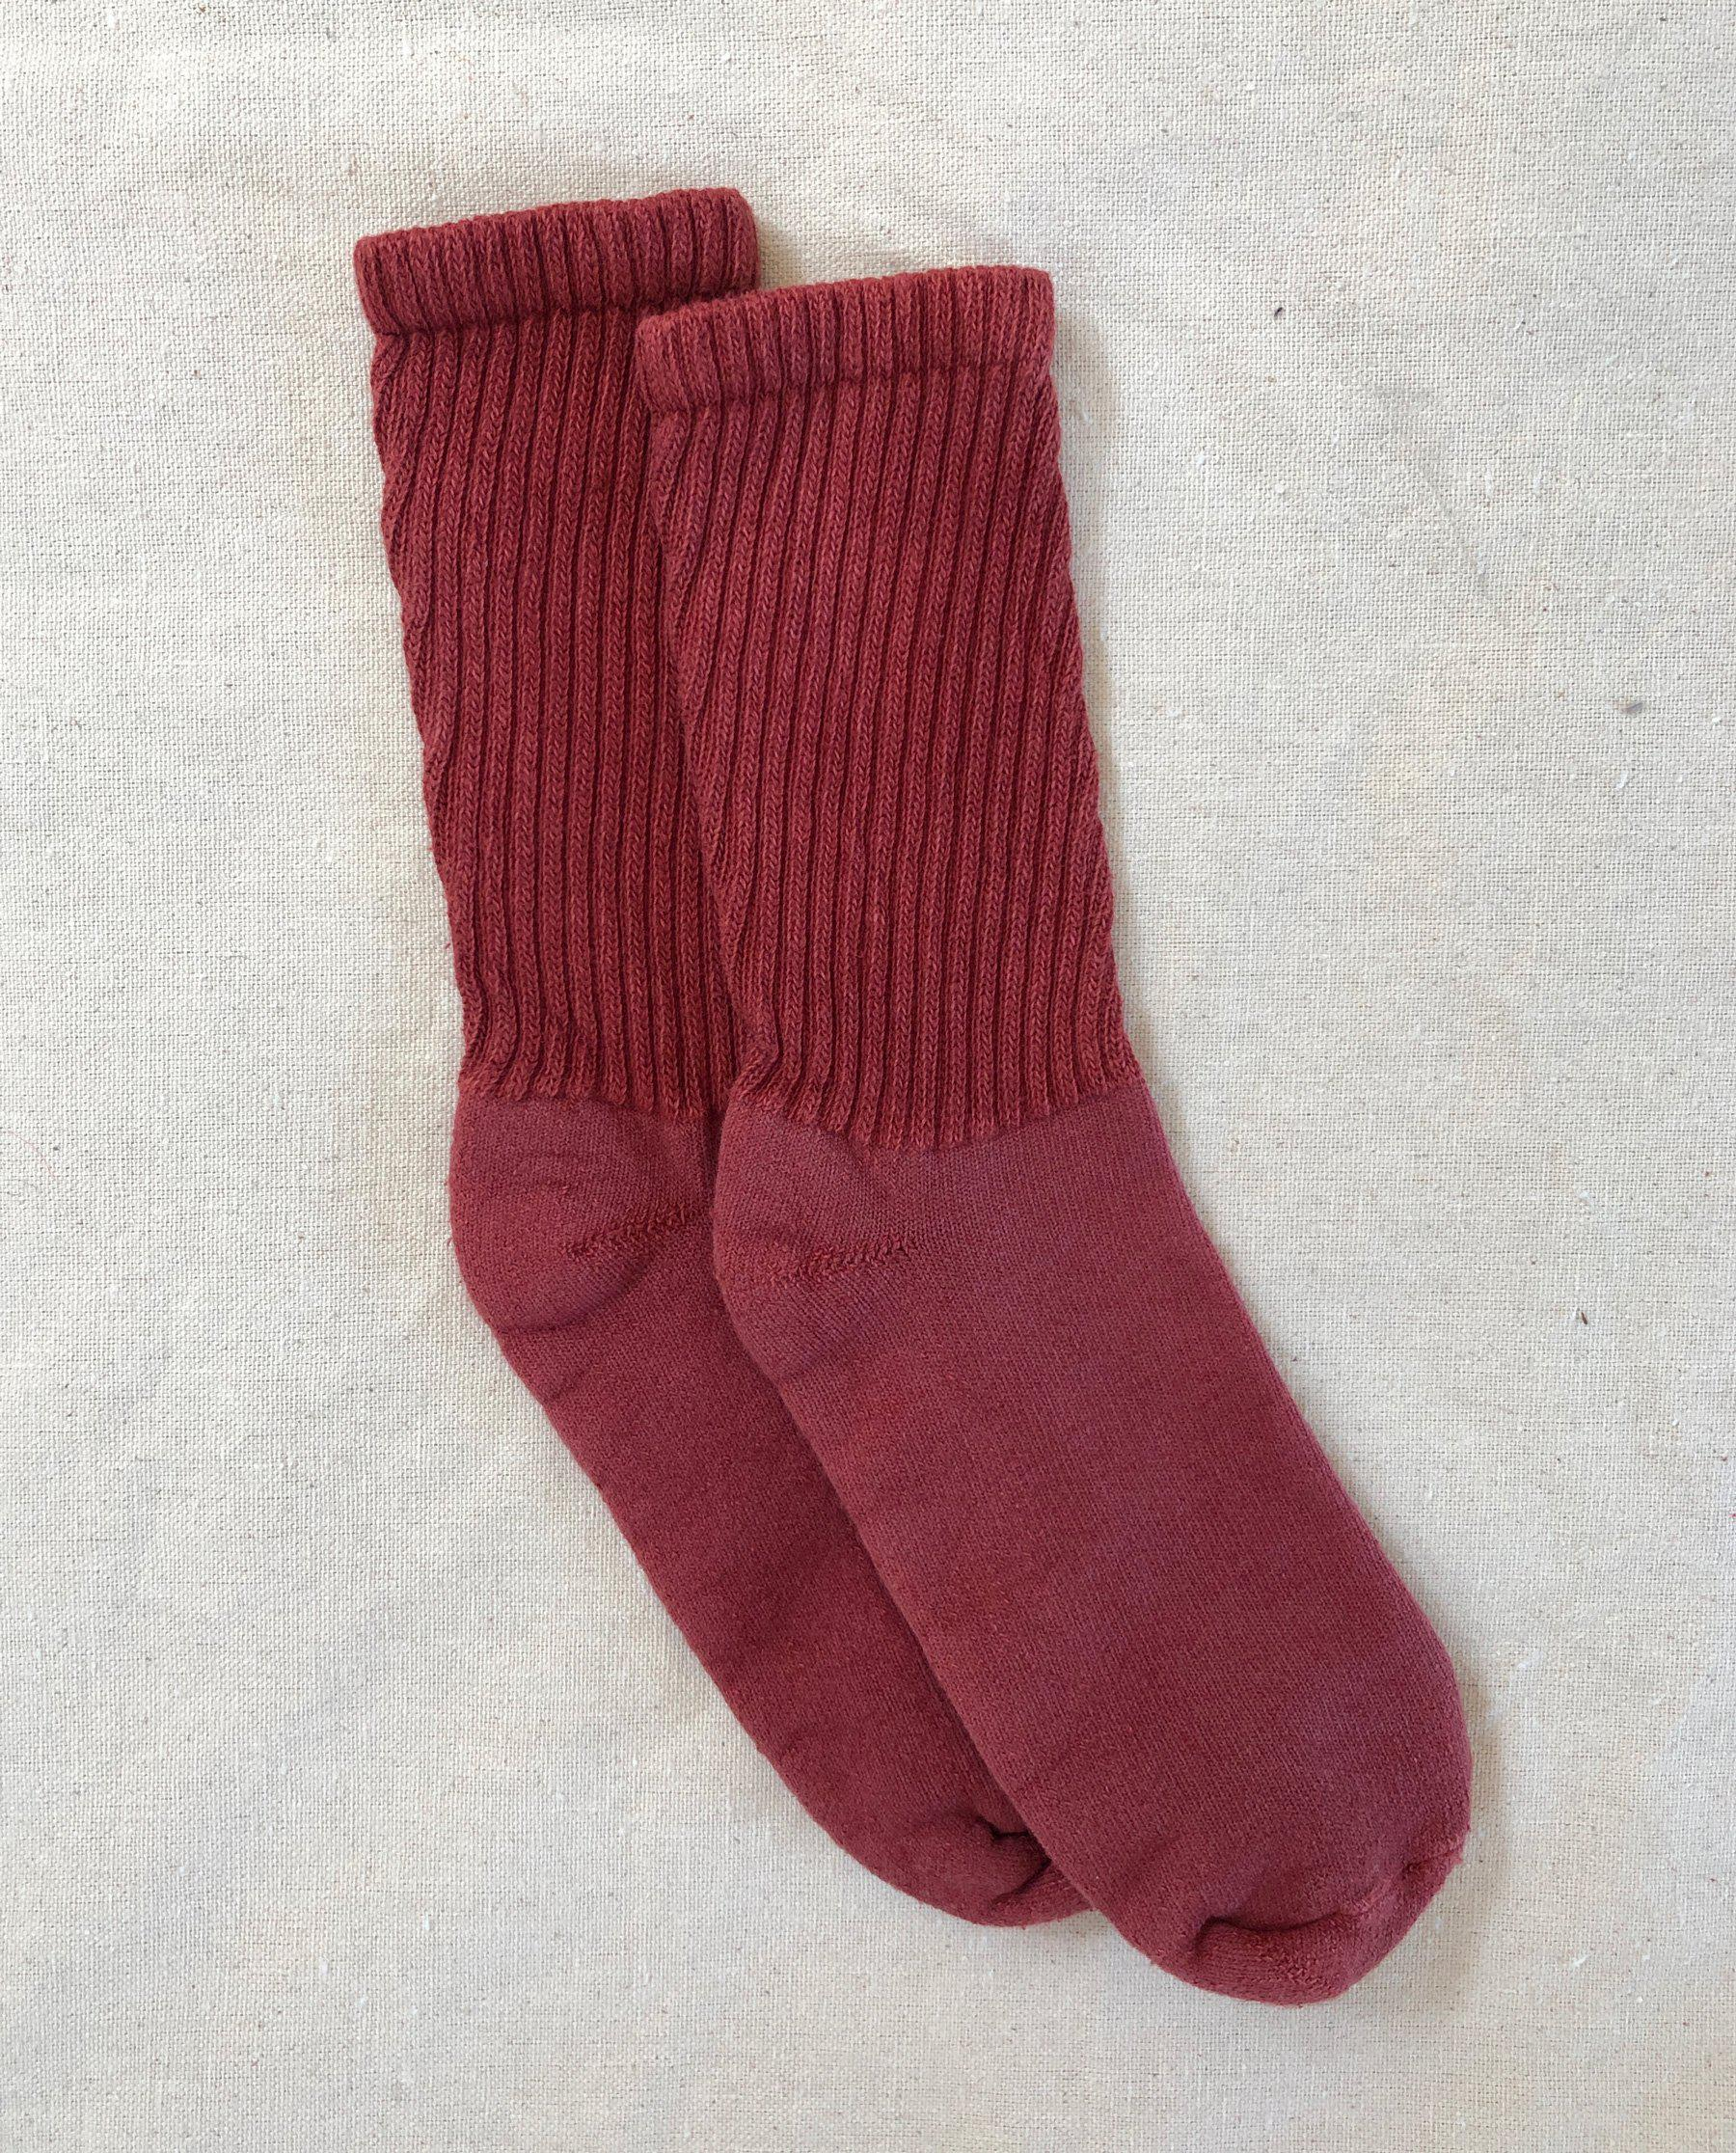 The Plant-Dyed Sock. -- Deep Madder Root